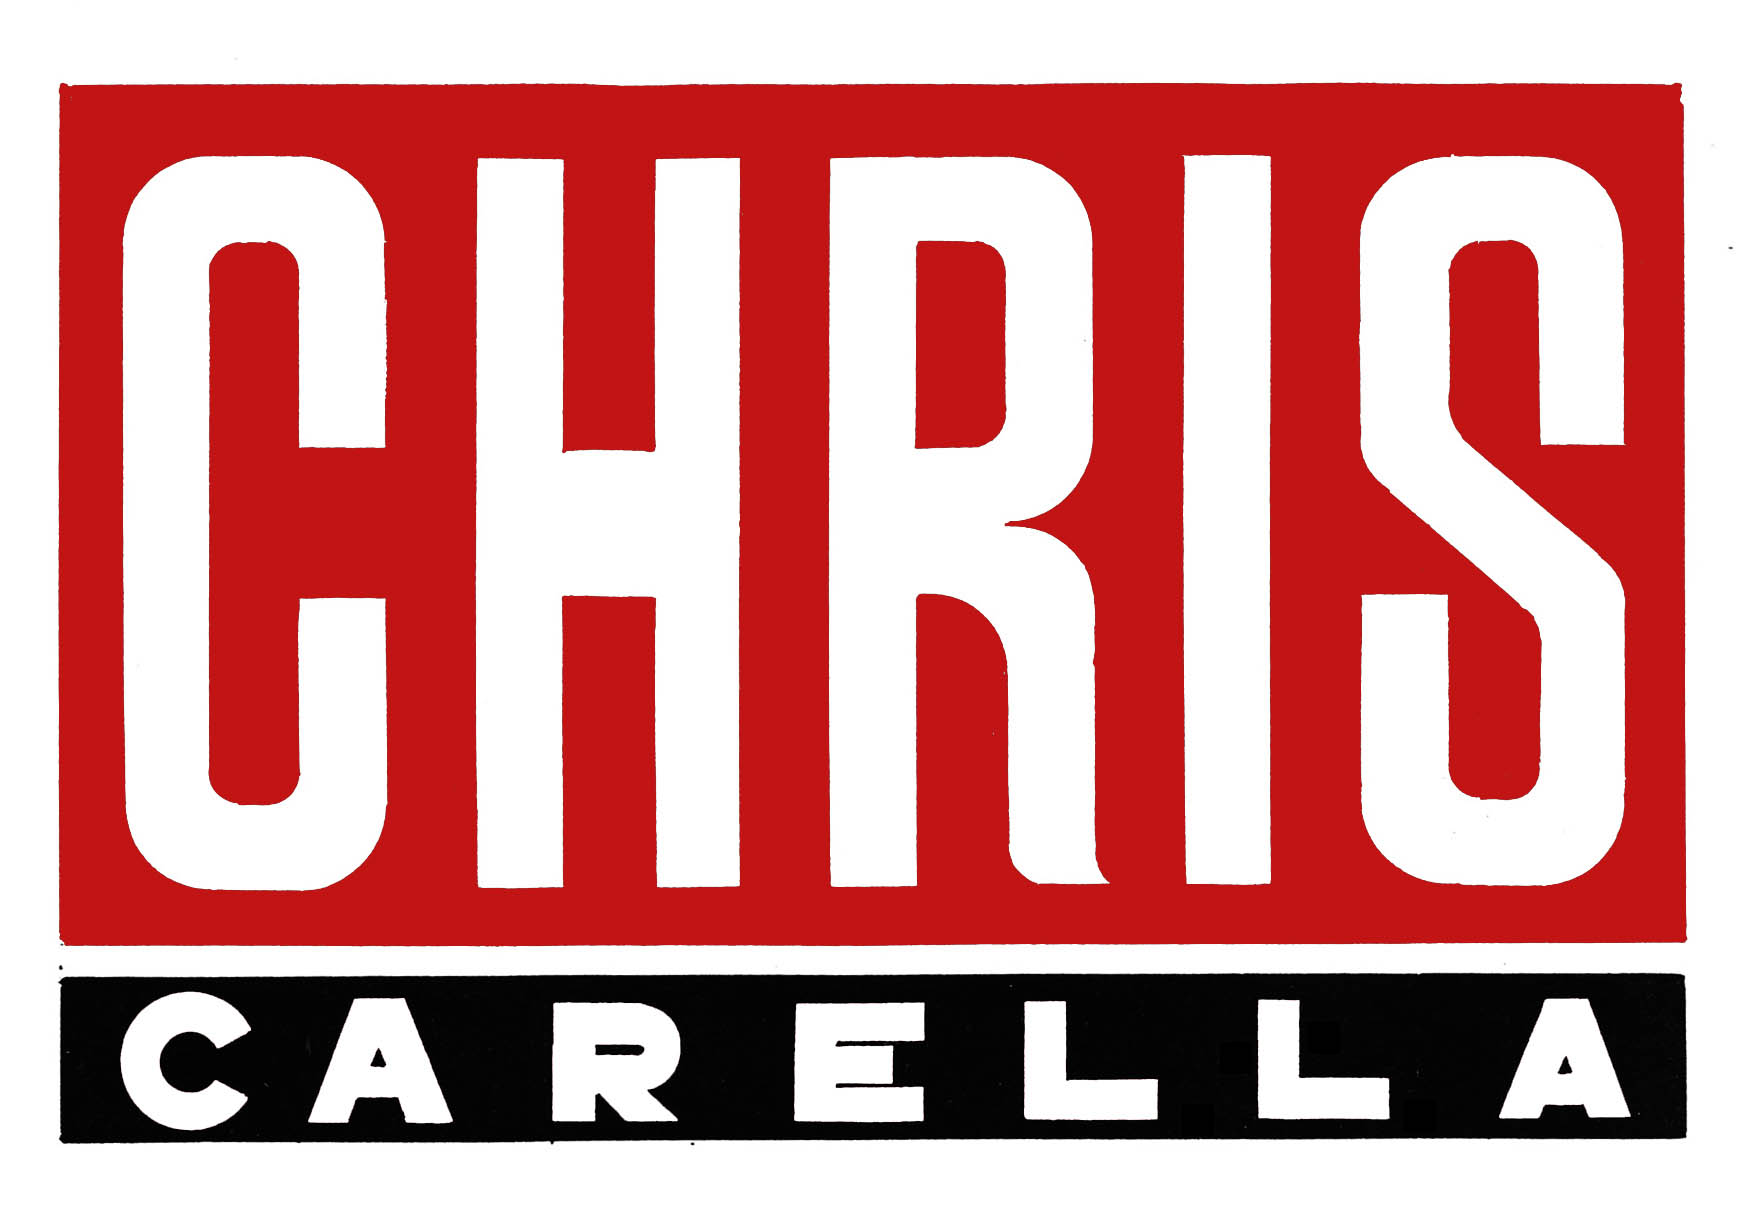 Chris Carella Artist Wanted